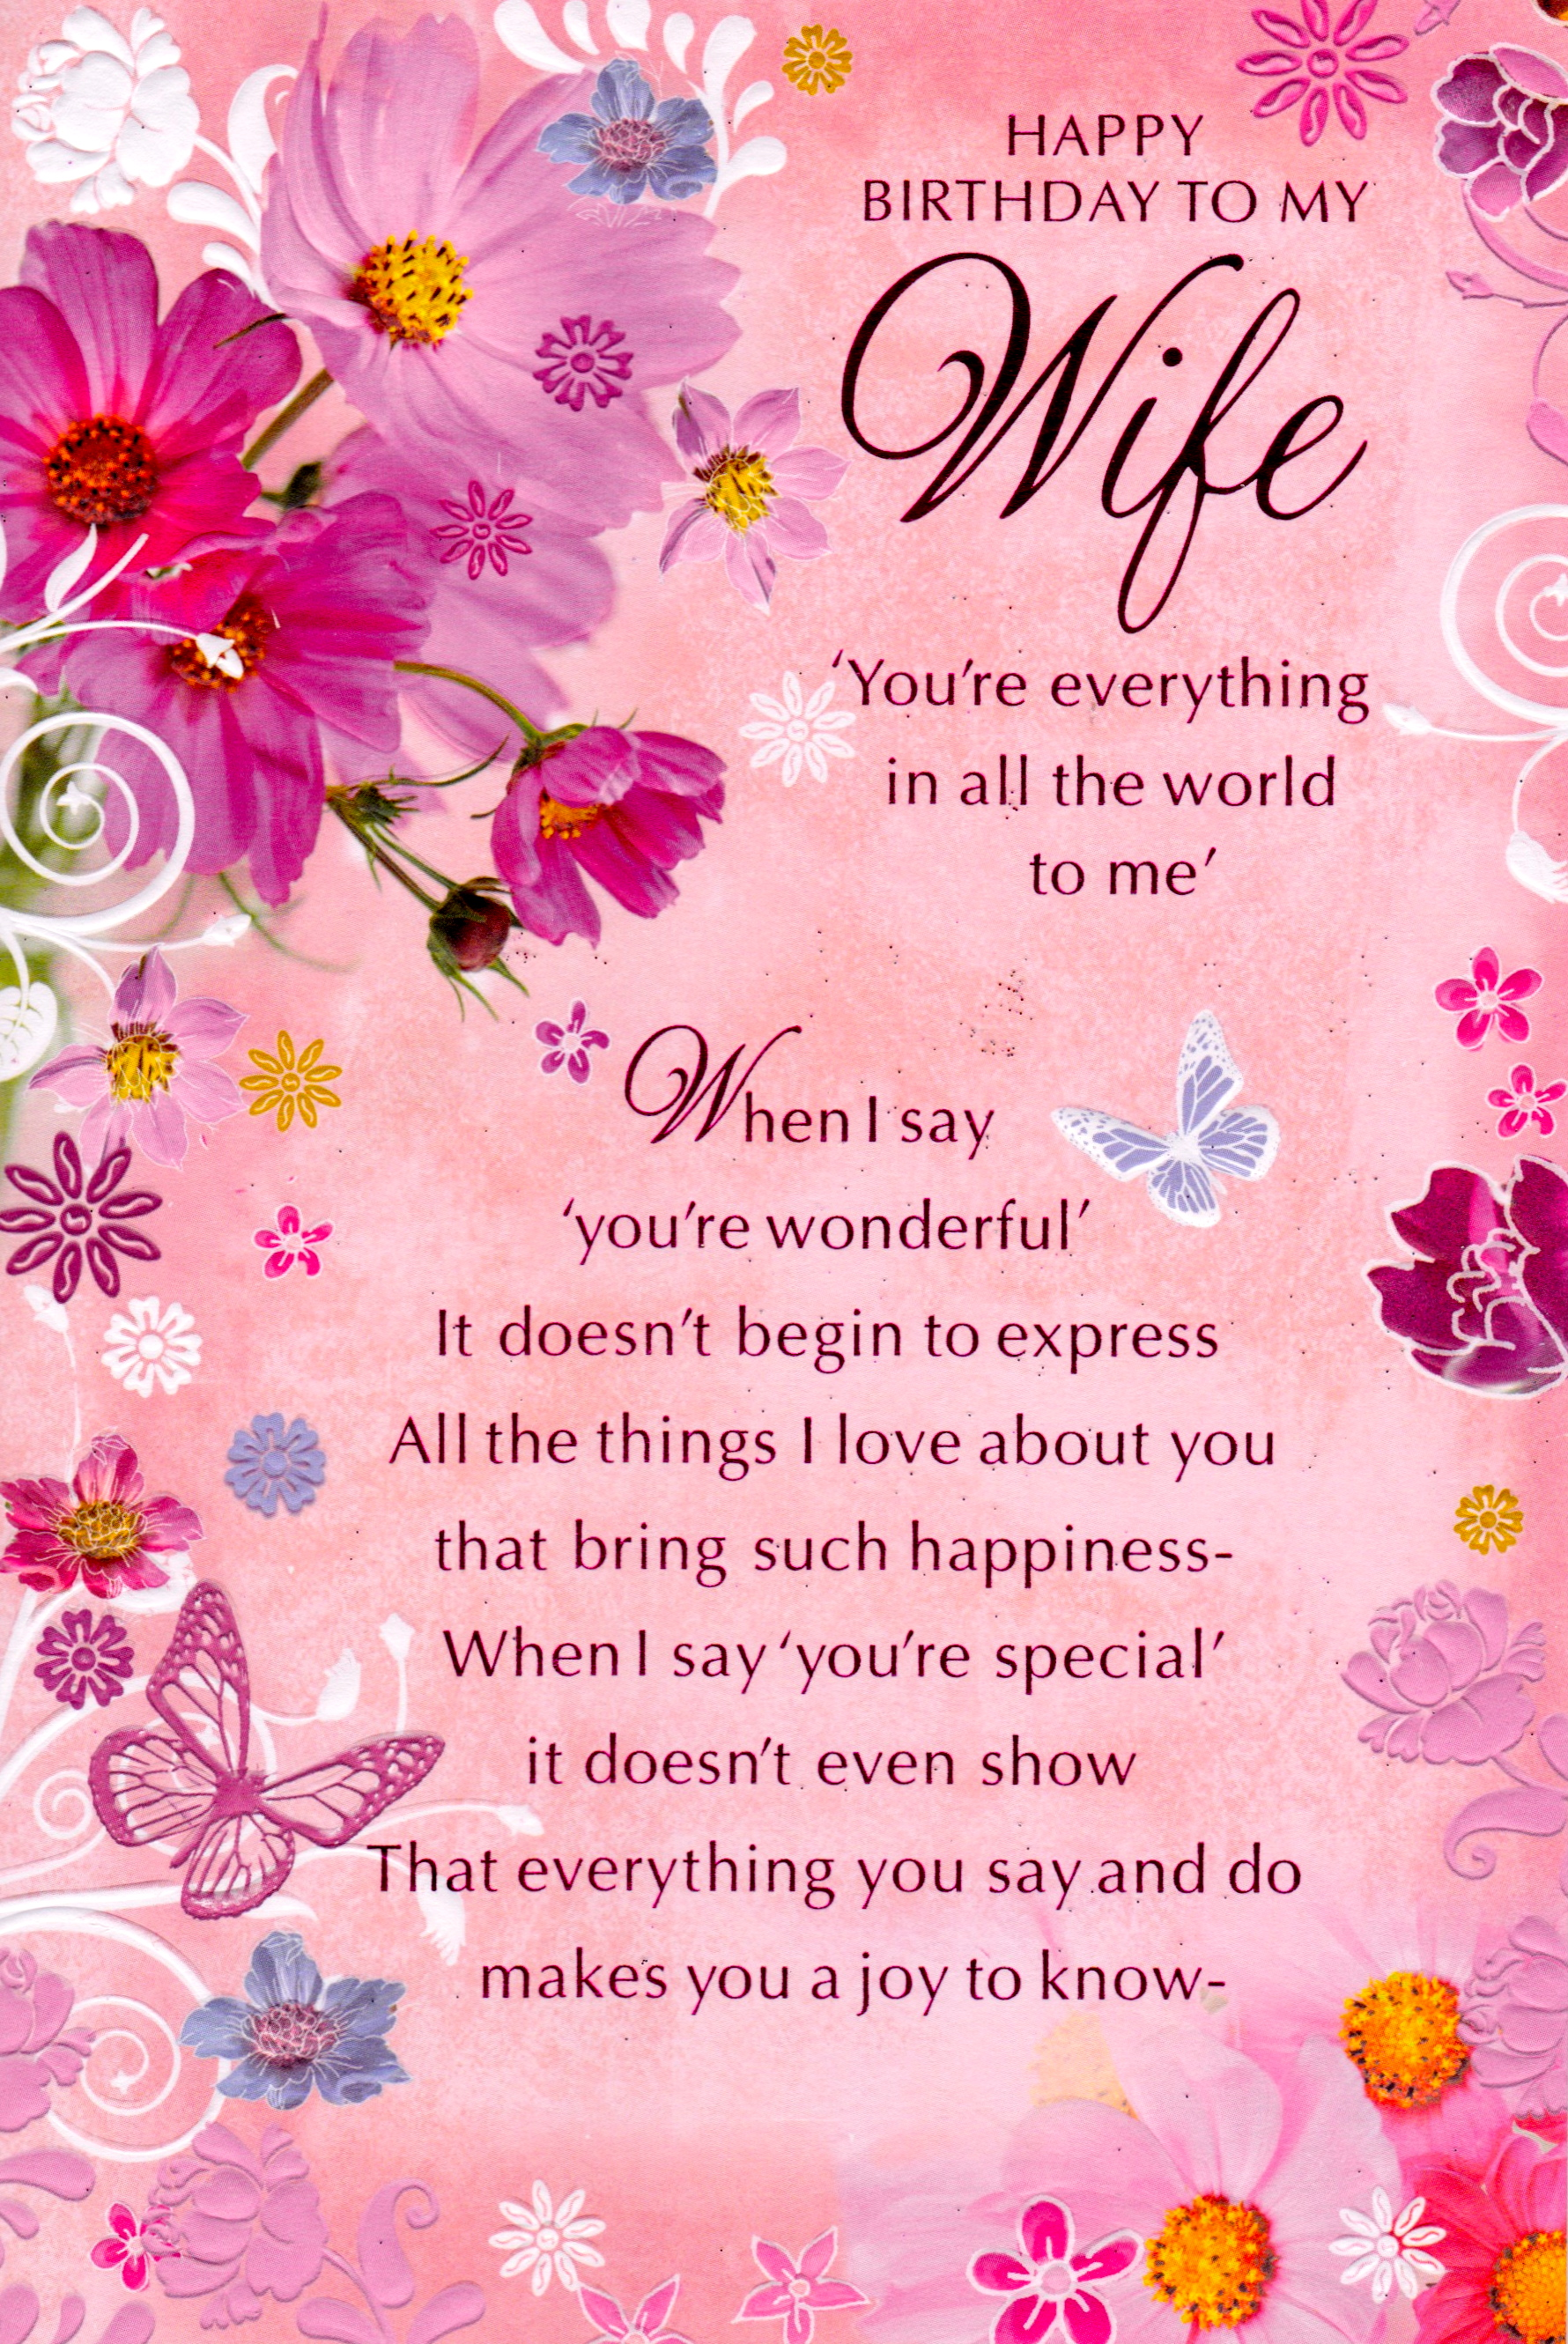 birthday wish for wife poem ; scan-1447-pink-wth-flowers-and-butterfly-design-poem-words-romantic-and-innovative-creation-graphics-happy-birthday-cards-for-wife